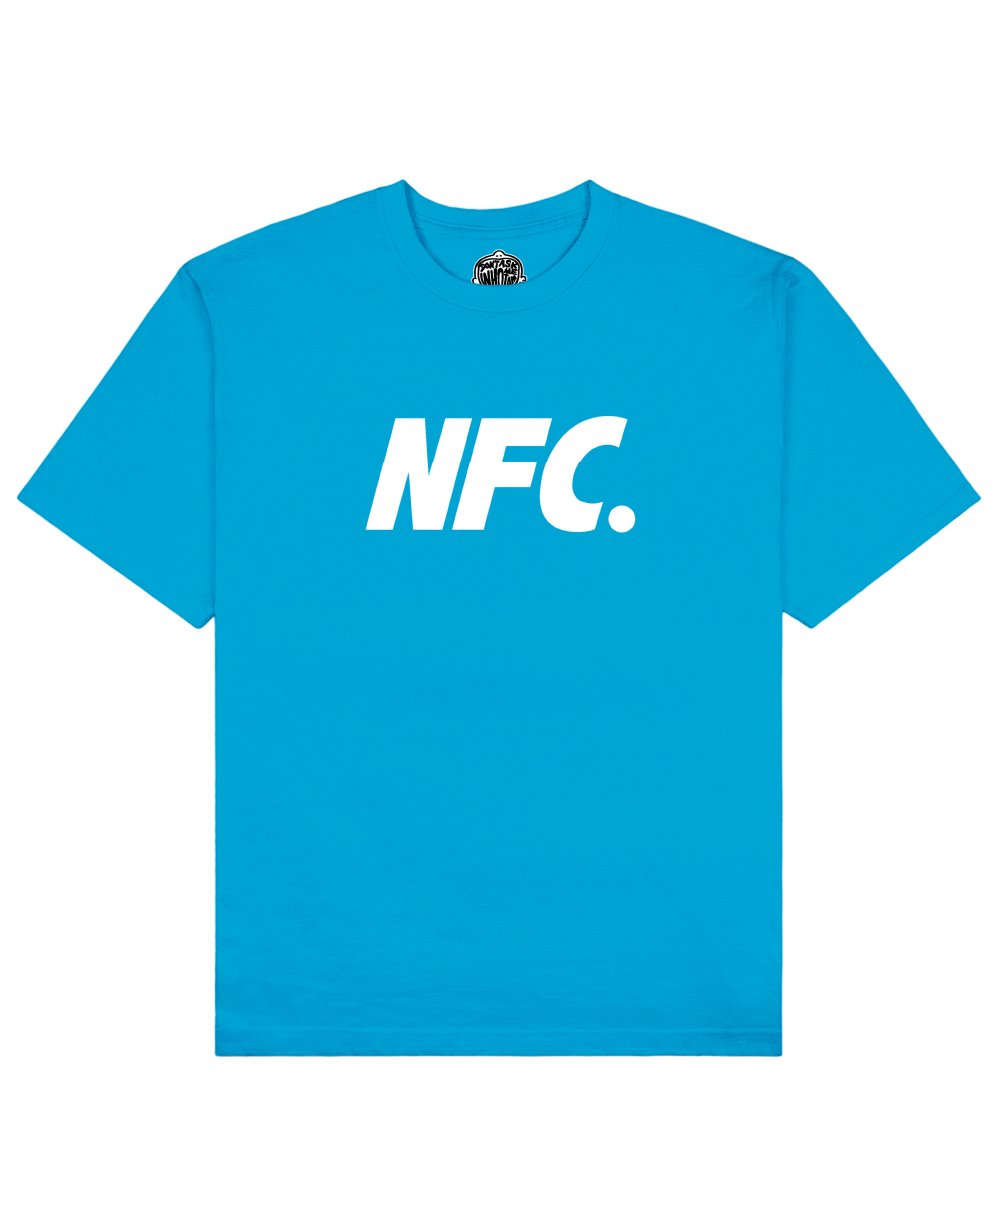 NFC Print T-shirt in Ocean Blue - T-Shirts - Don't ask me who I am - BRANMA